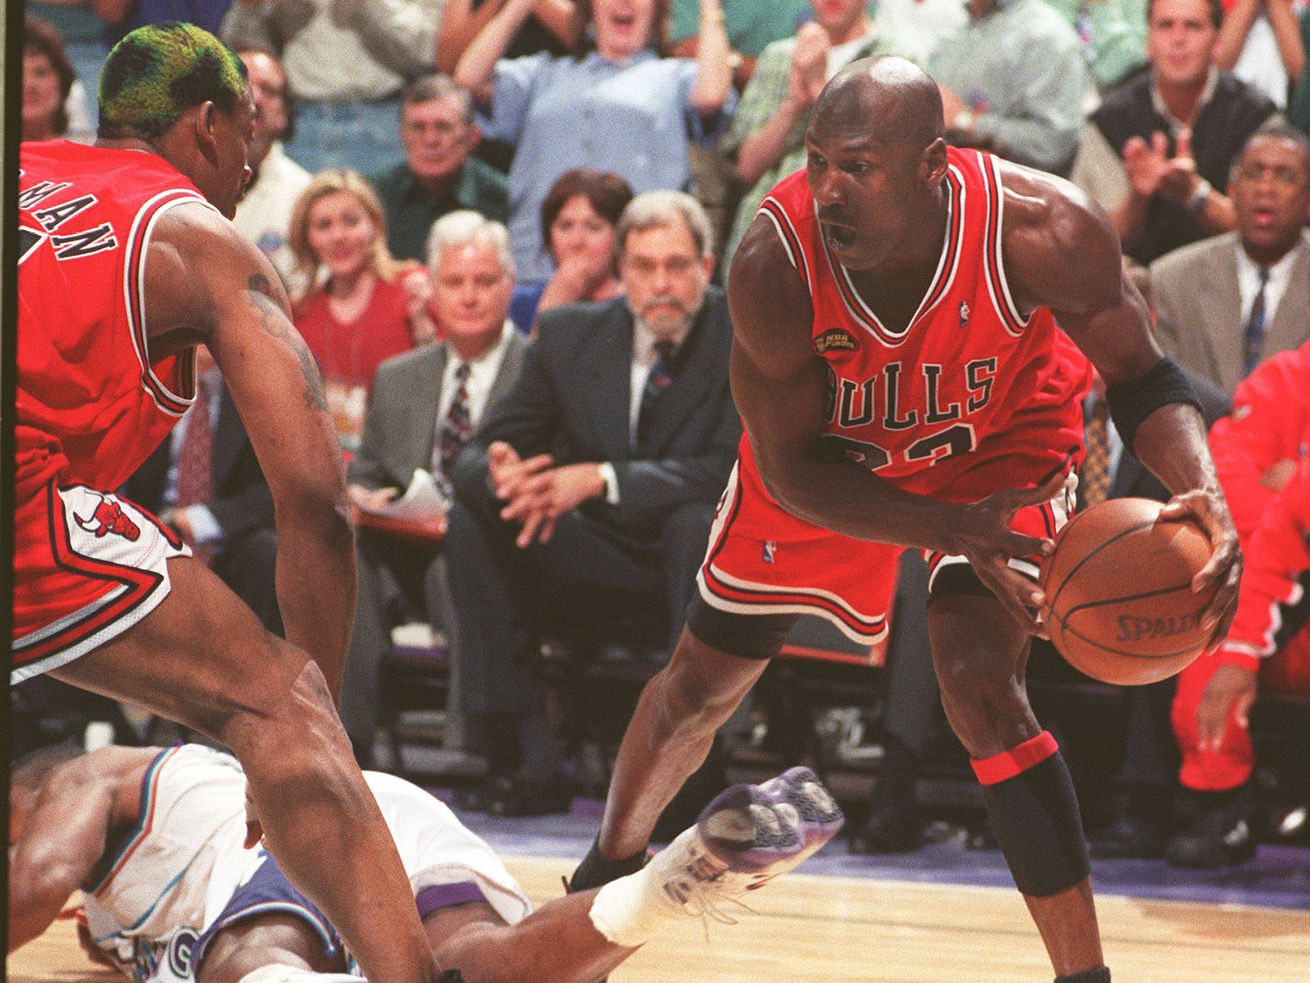 Micheal Jordan after stealing the ball in the final seconds during Sunday night's Game 6 of the NBA Finals at the Delta Center, June 14, 1998.